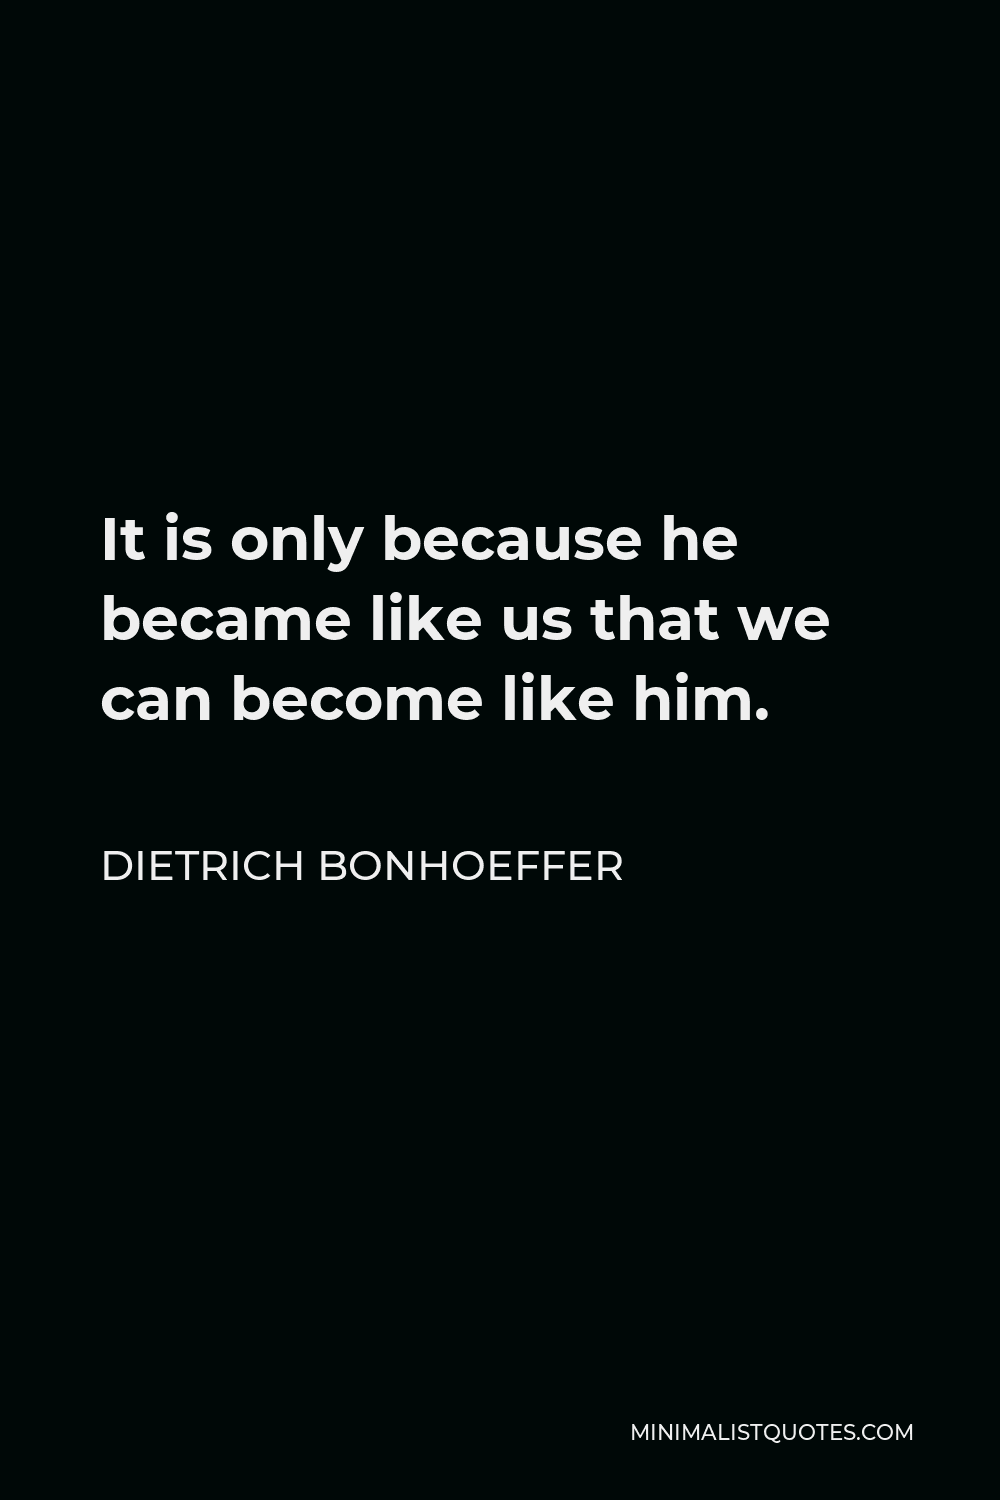 Dietrich Bonhoeffer Quote - It is only because he became like us that we can become like him.